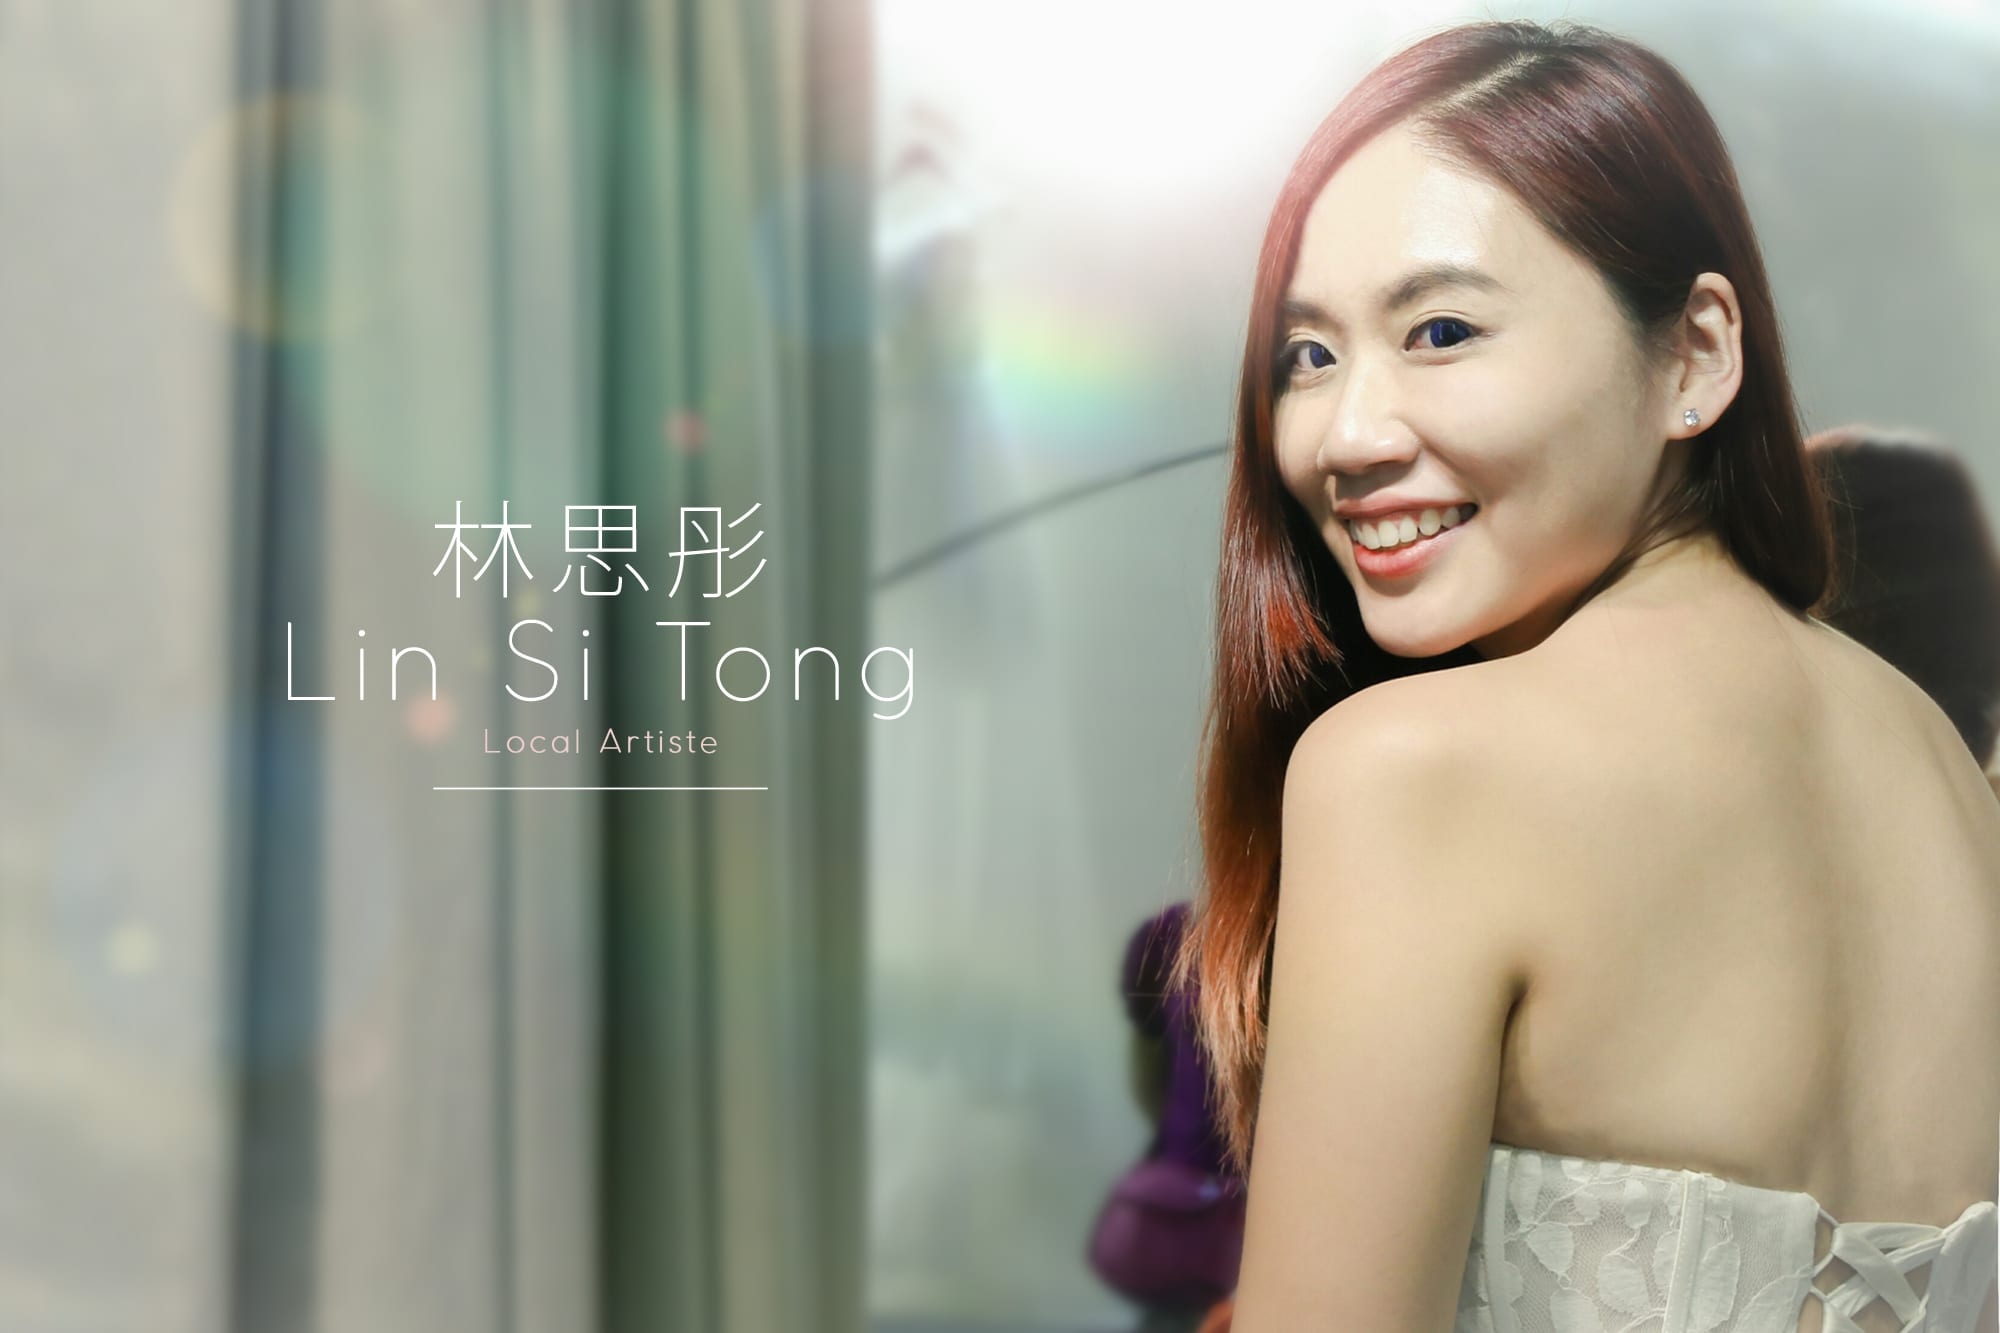 celebrity si tongs wedding gown fitting experience